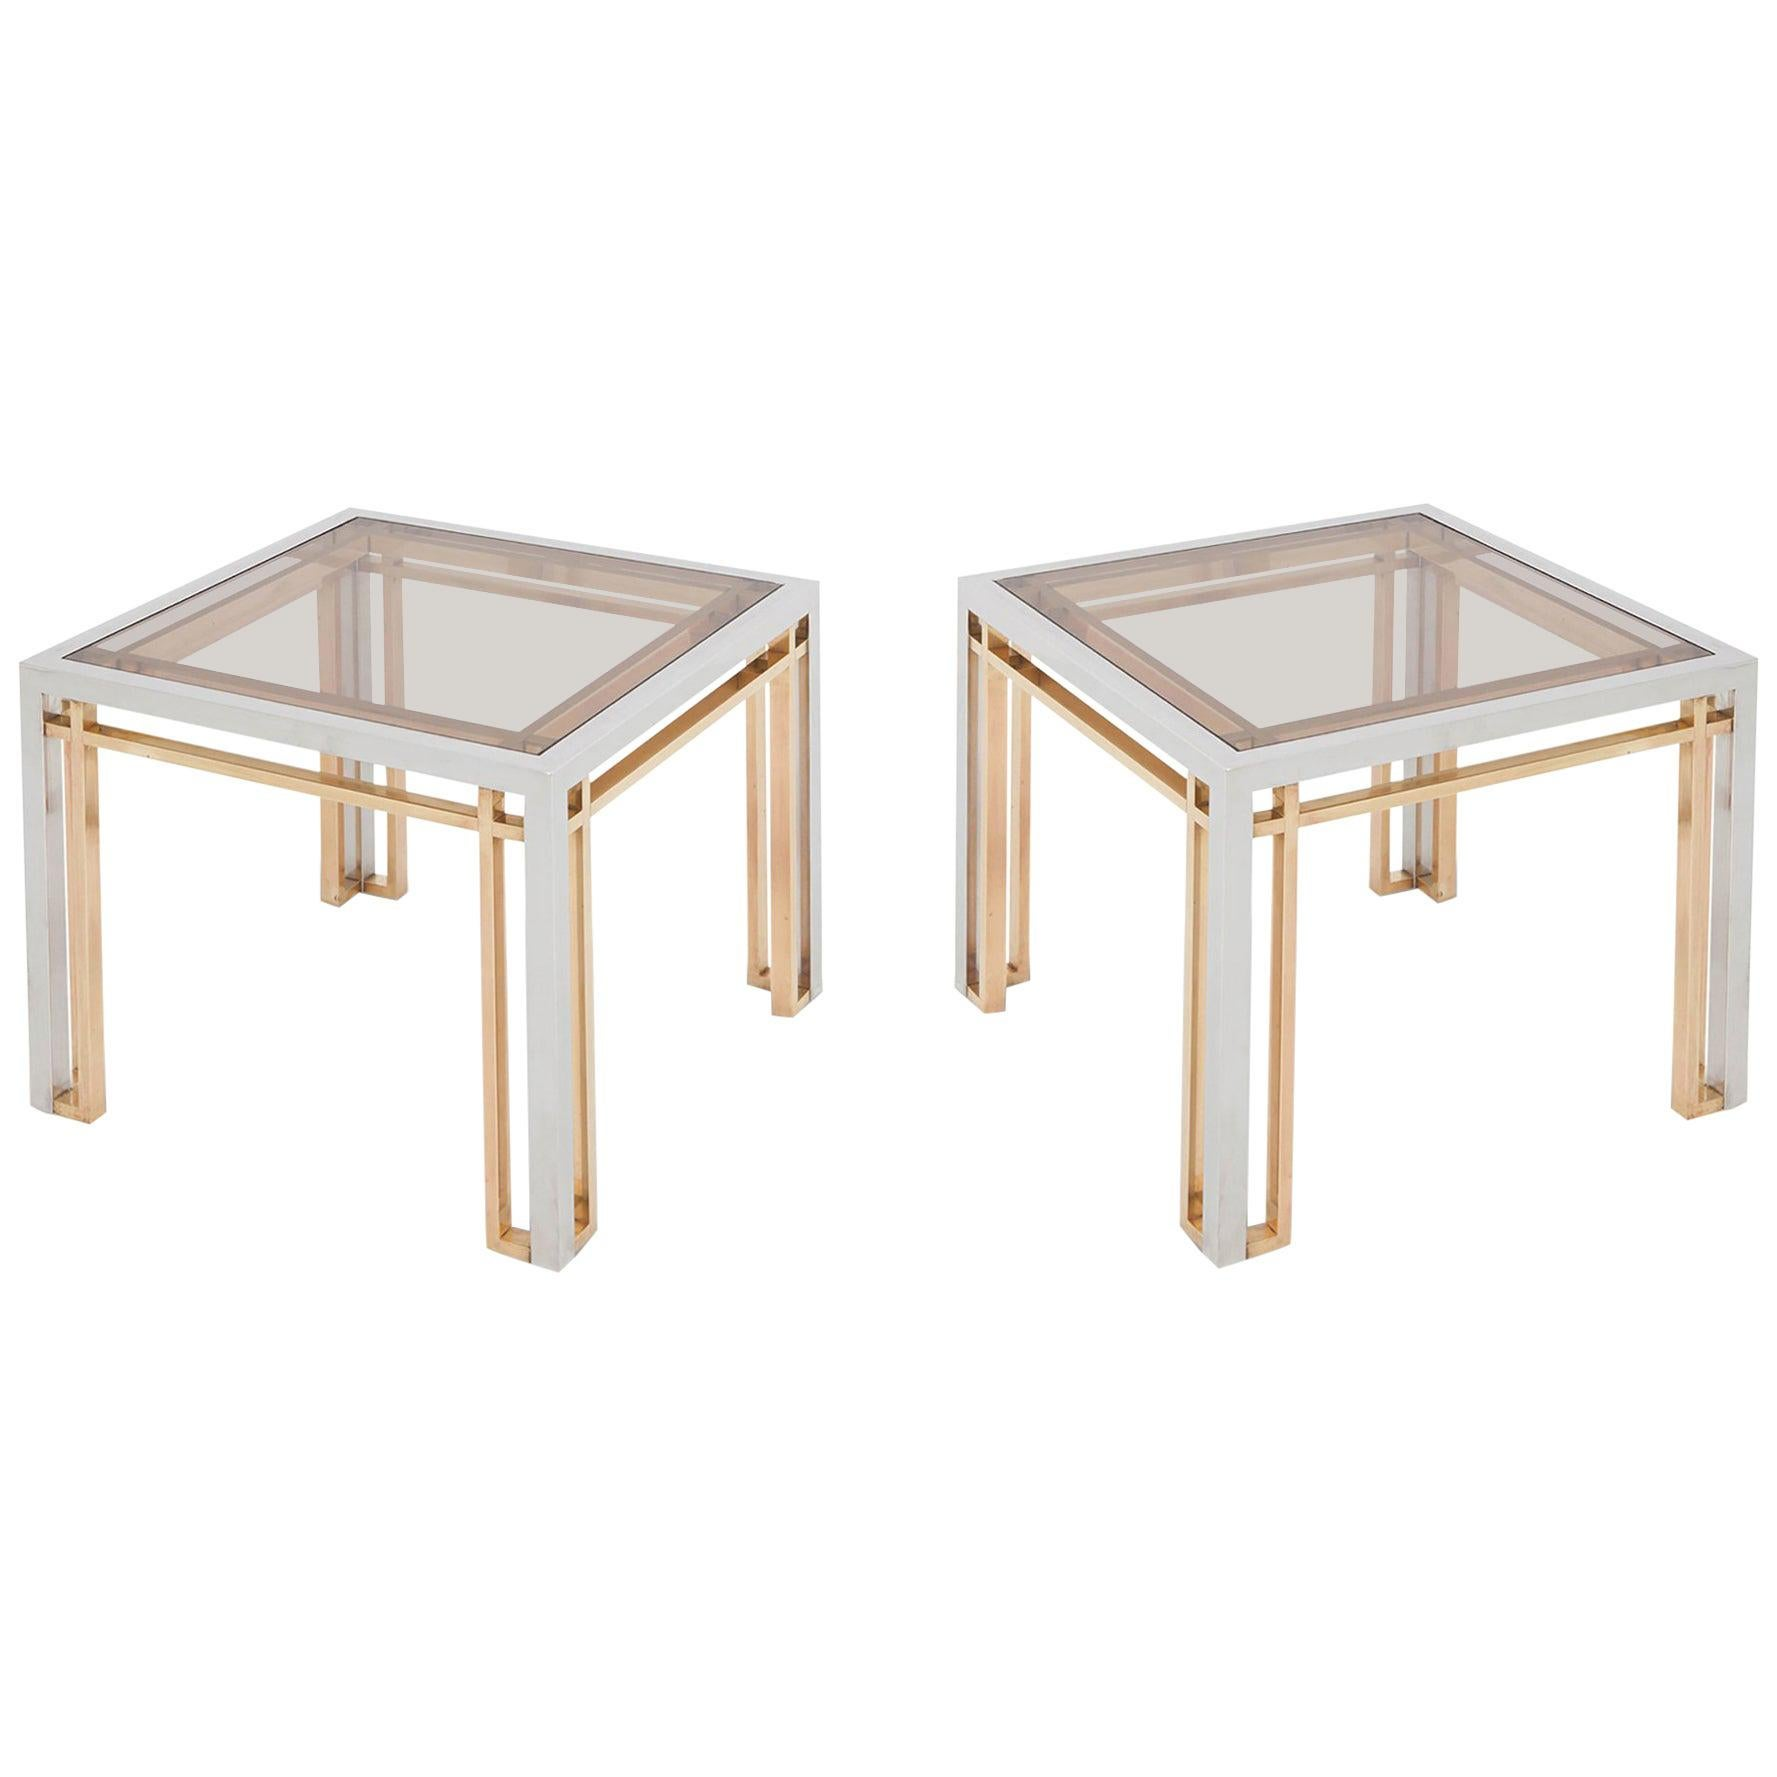 Romeo Rega Side Tables in Chrome, Brass and Glass, Set of 2